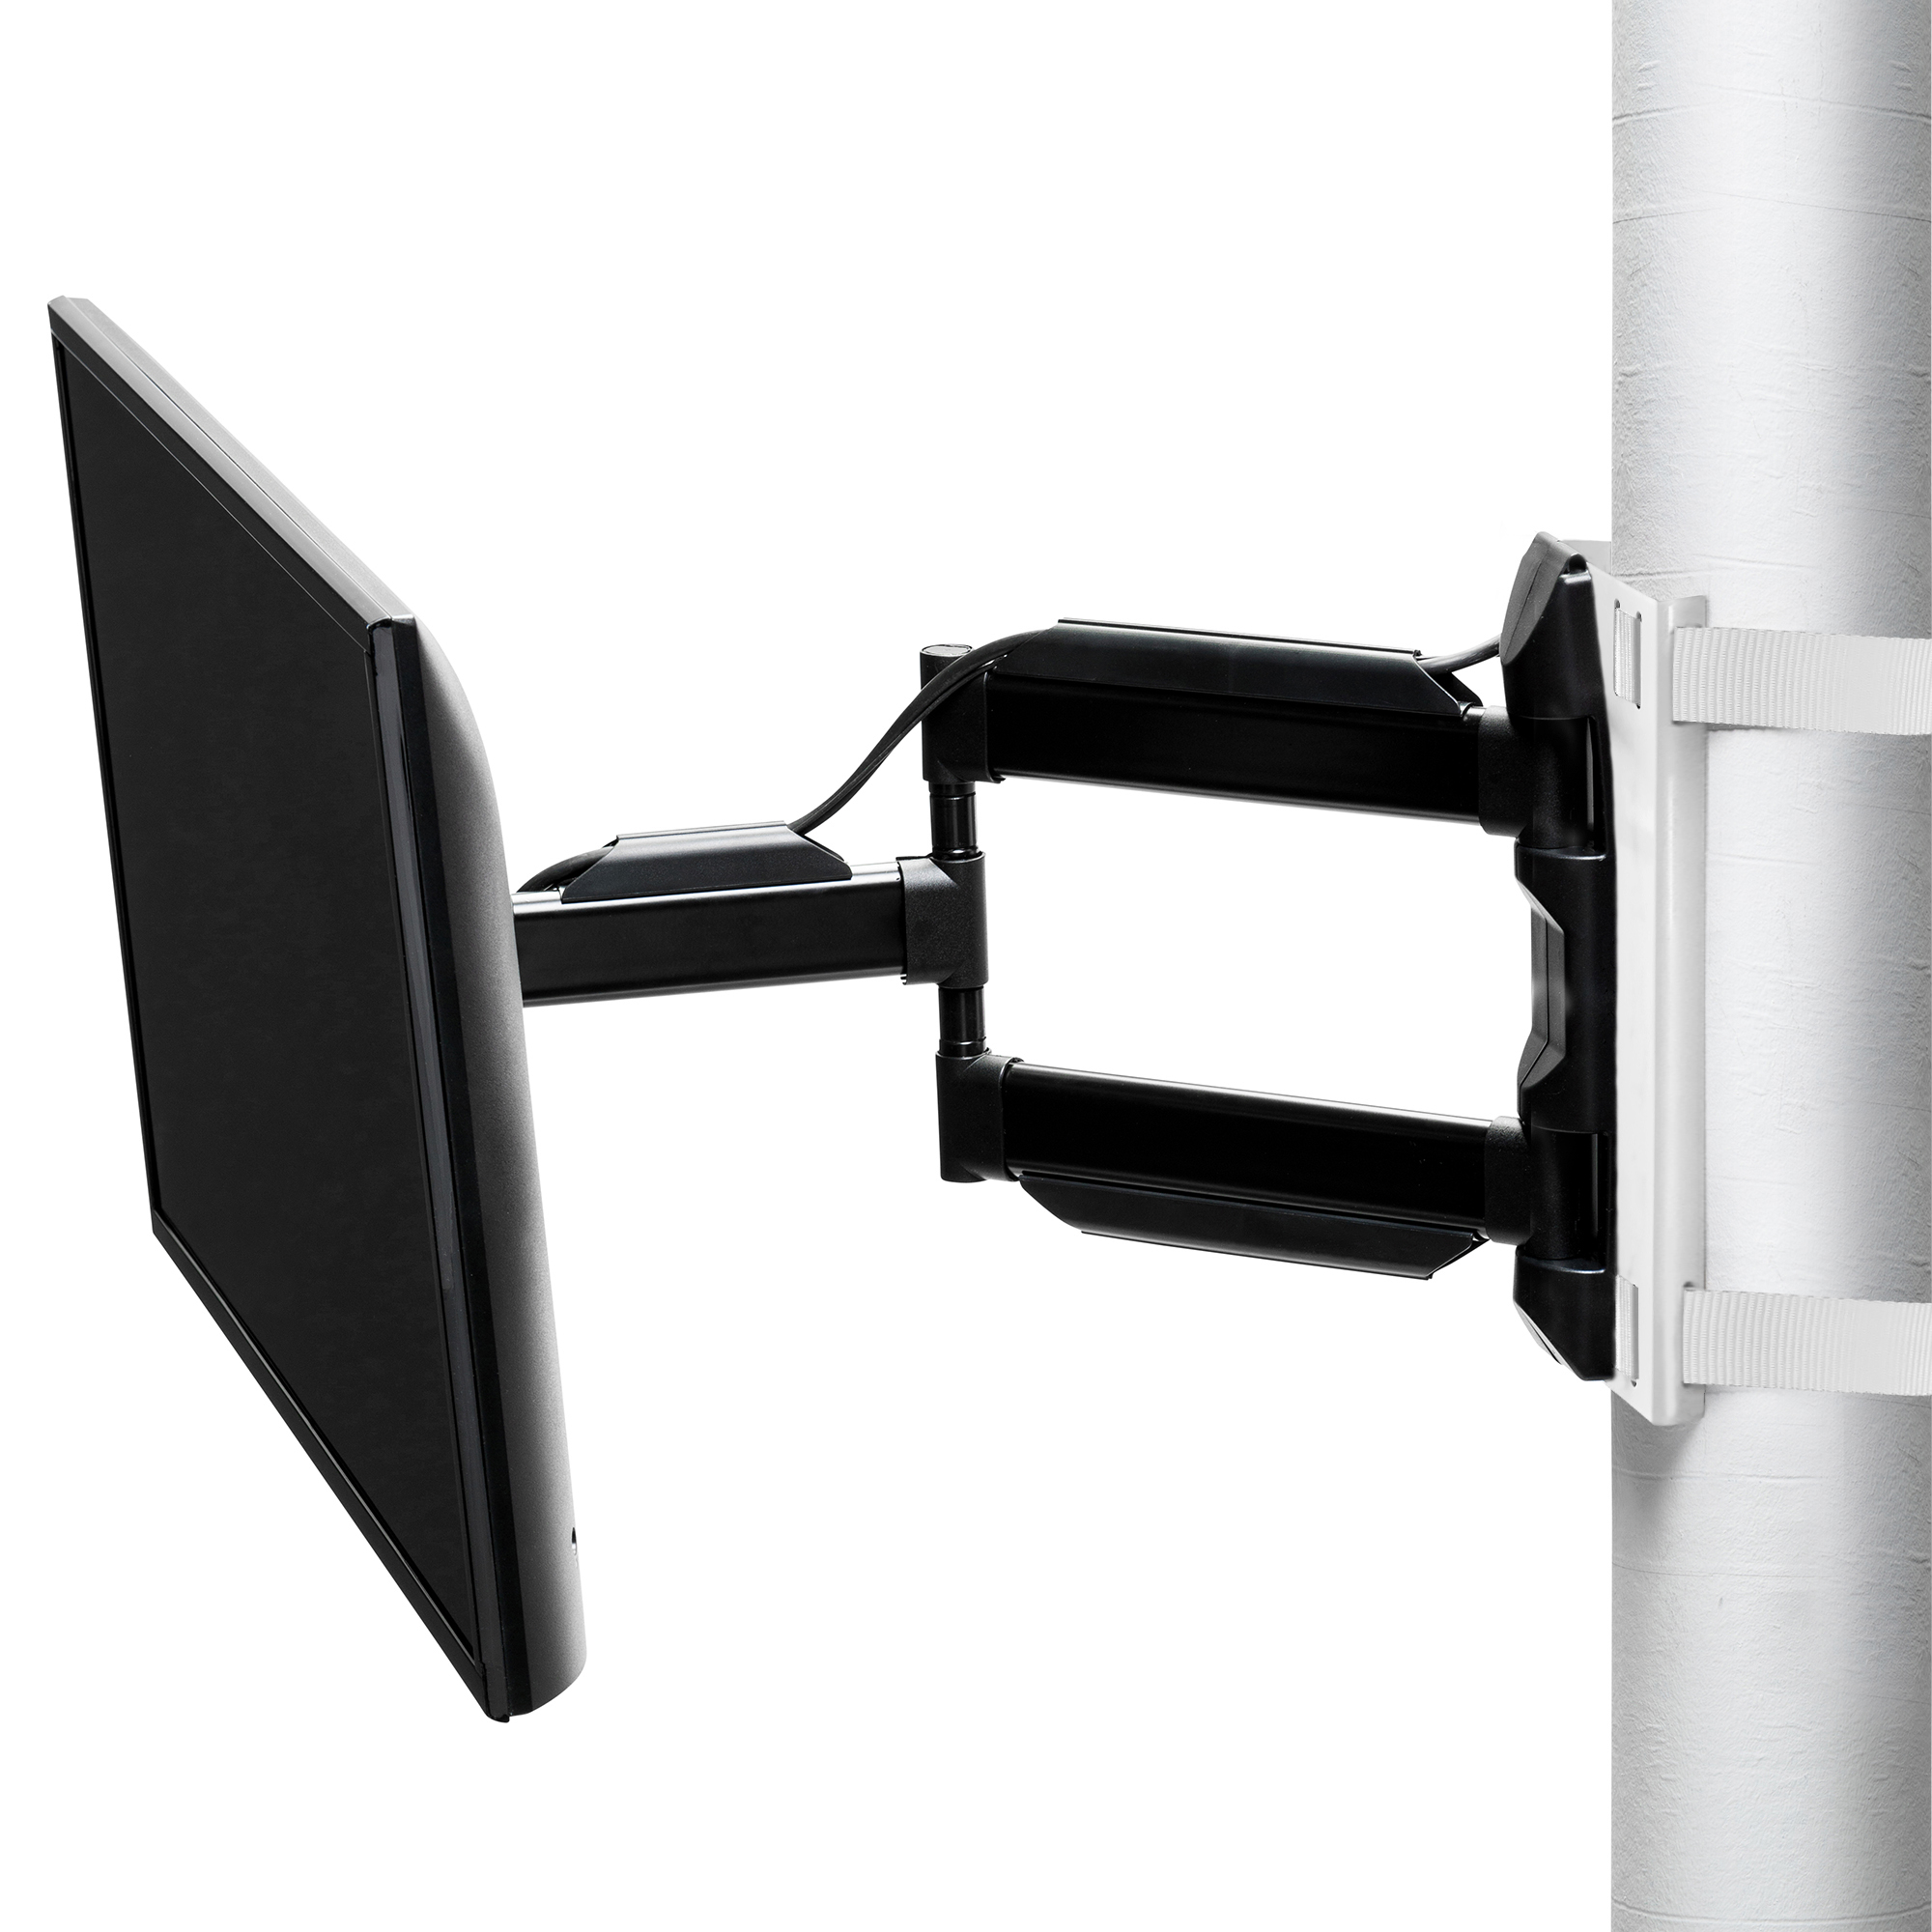 Column TV Mount Wrap around